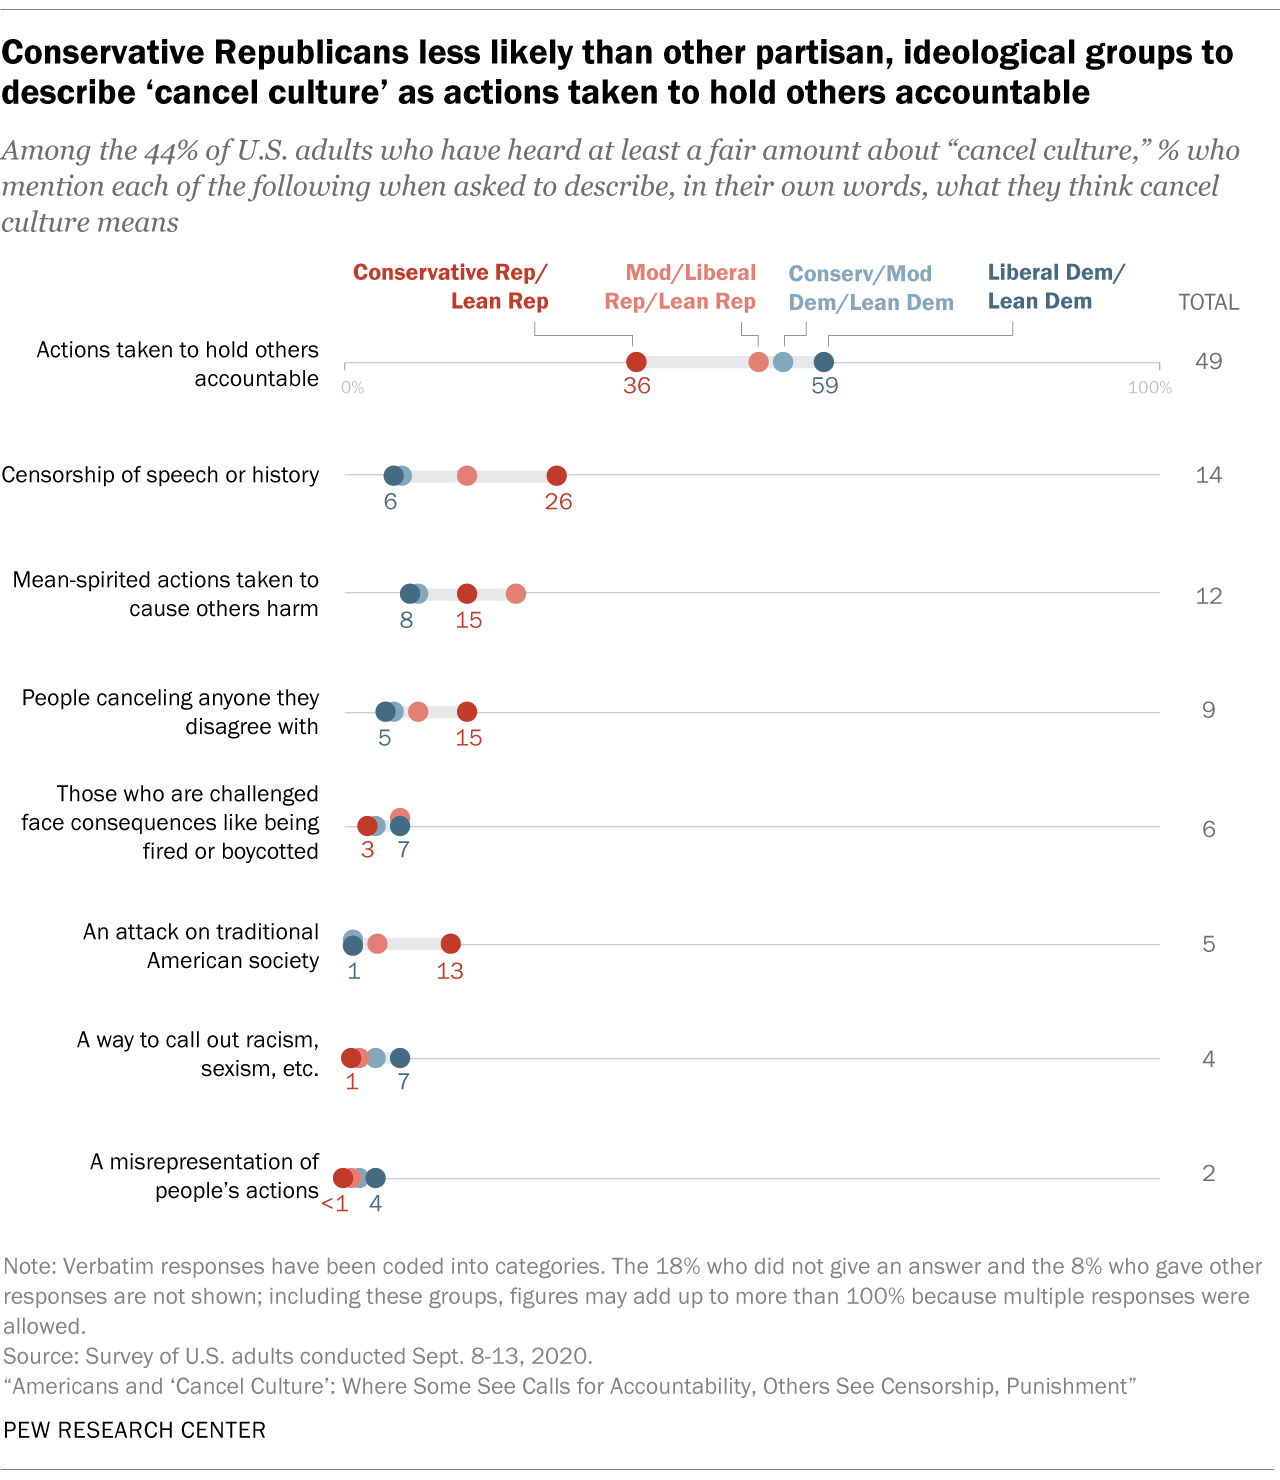 Conservative Republicans less likely than other partisan, ideological groups to describe 'cancel culture' as actions taken to hold others accountable